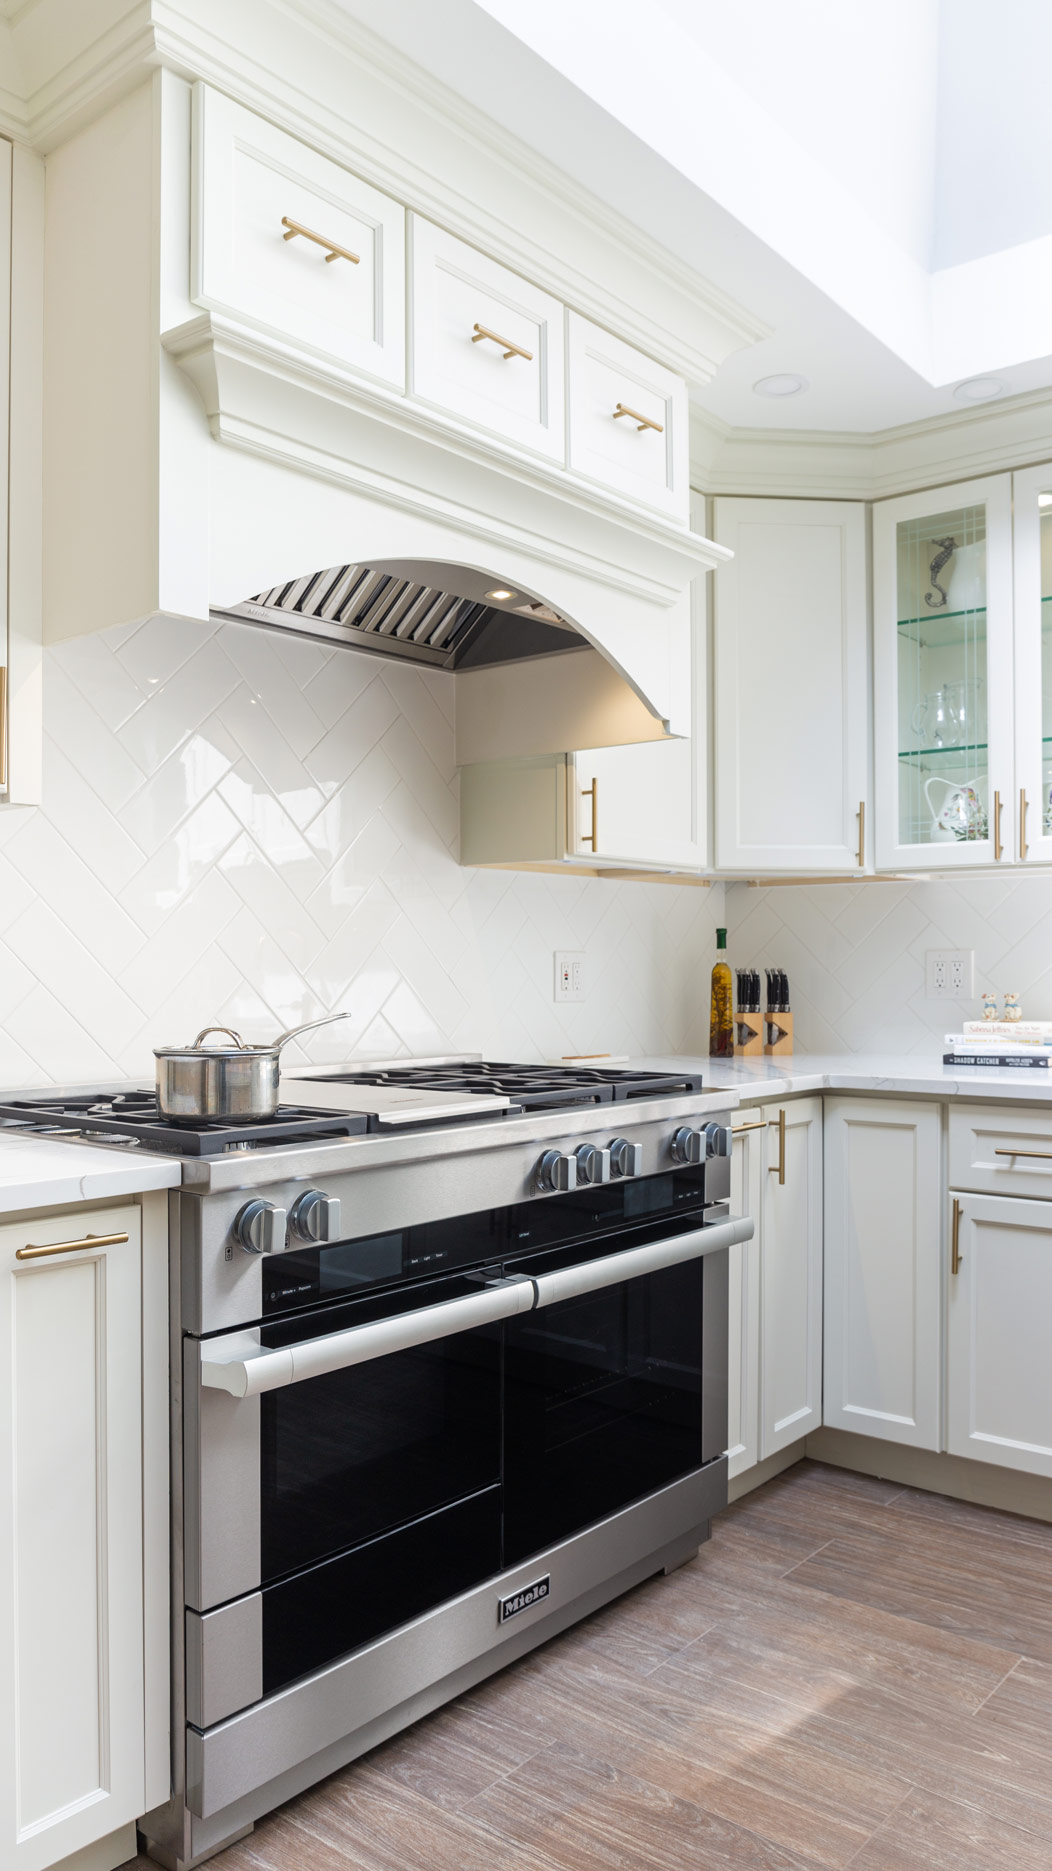 e1 dove j k cabinetry in 2020 cabinetry kitchen cabinets wall oven on j kitchen id=33237